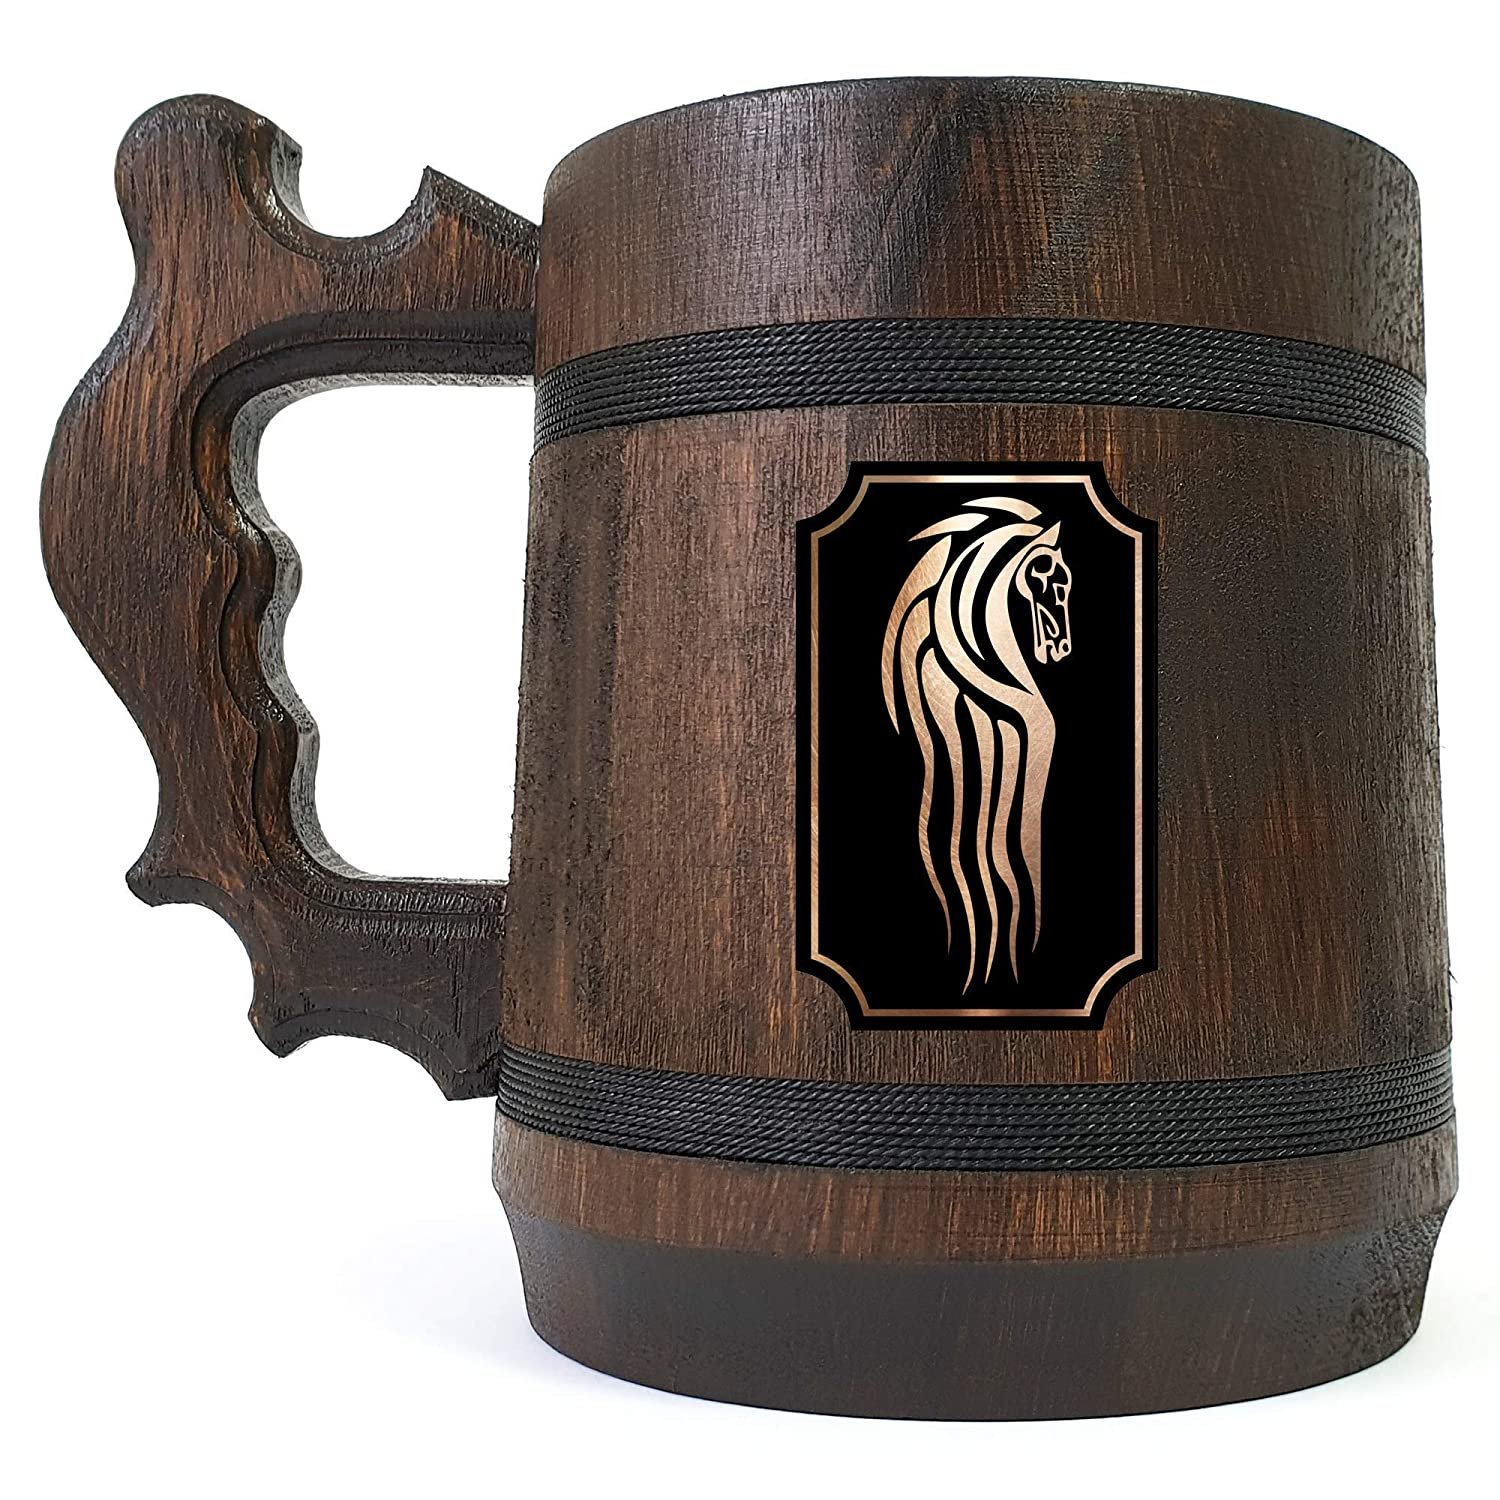 Rohan Mug Personalized Gift For Him LOTR Gift Lord of the Rings Beer Tankard Wooden Beer Mug Wooden Stein Gift for Husband Fathers Day Gift